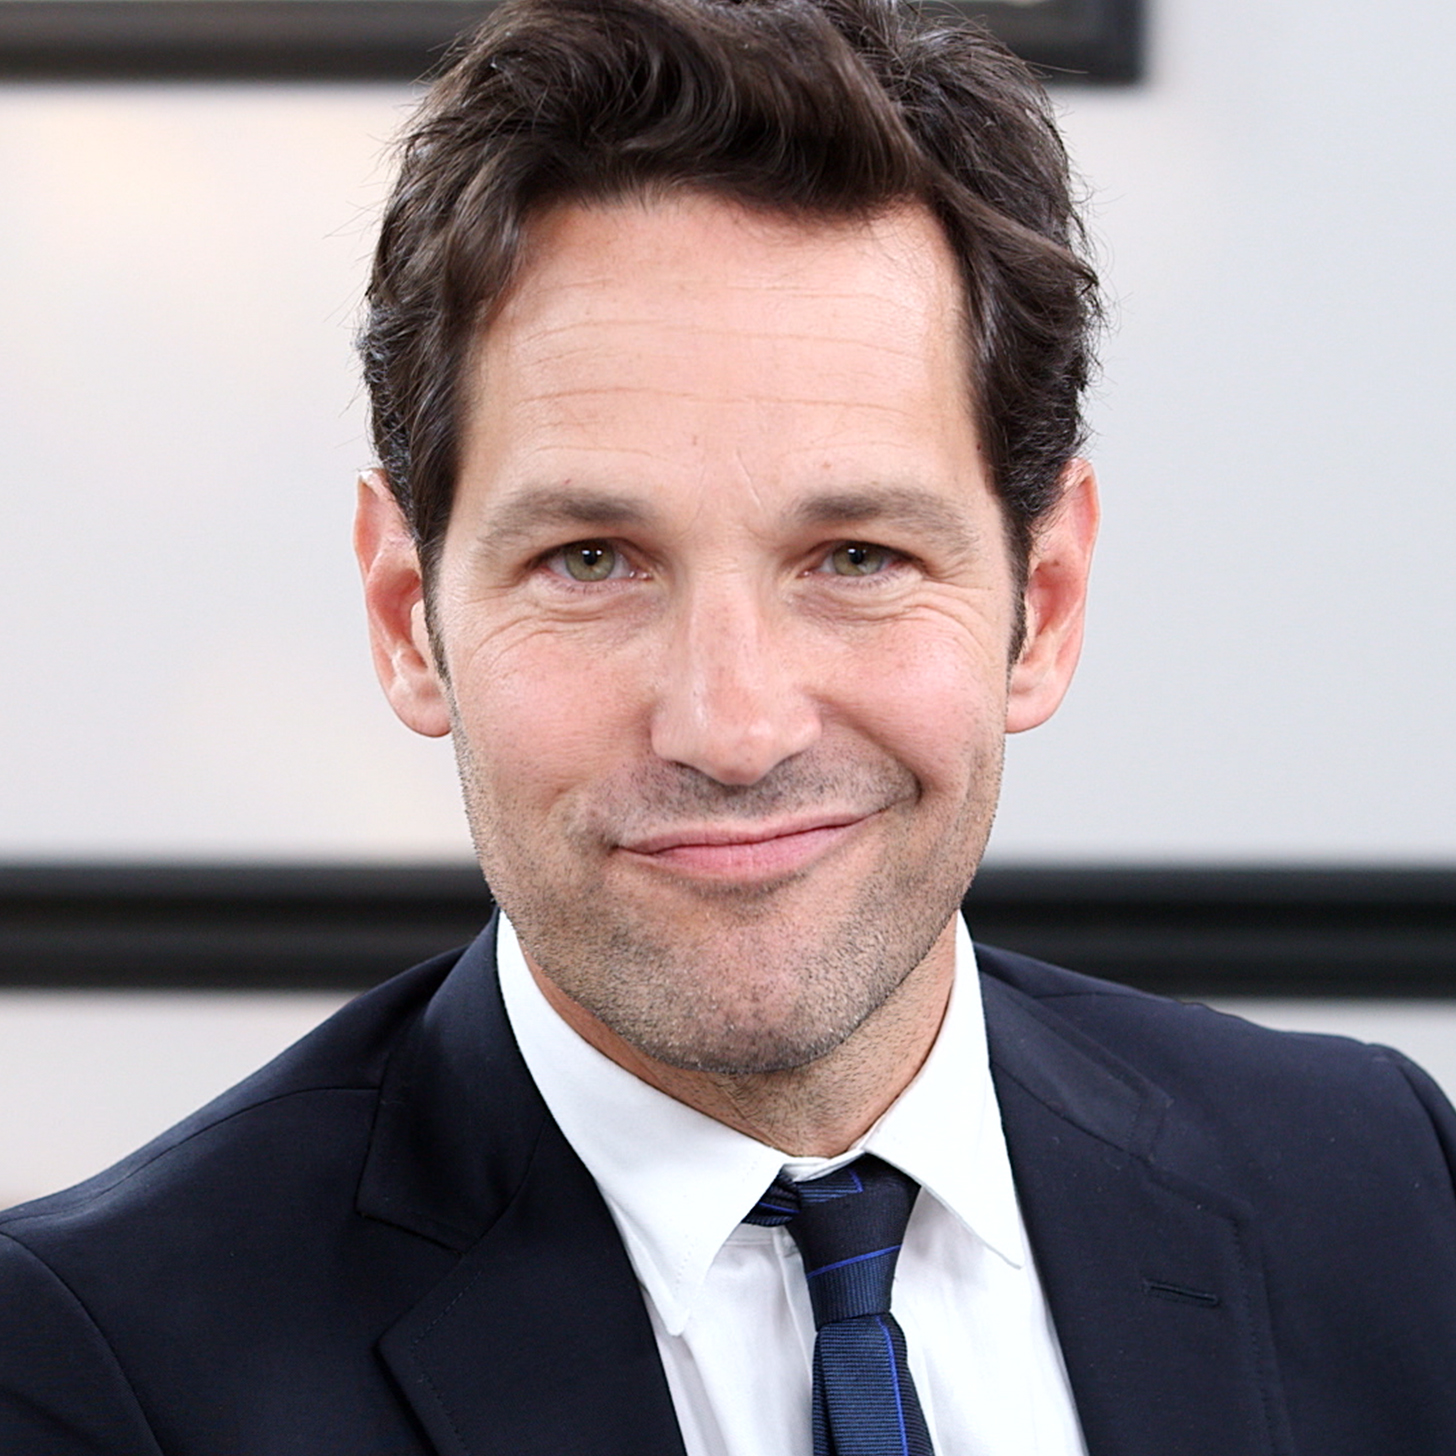 how tall is paul rudd